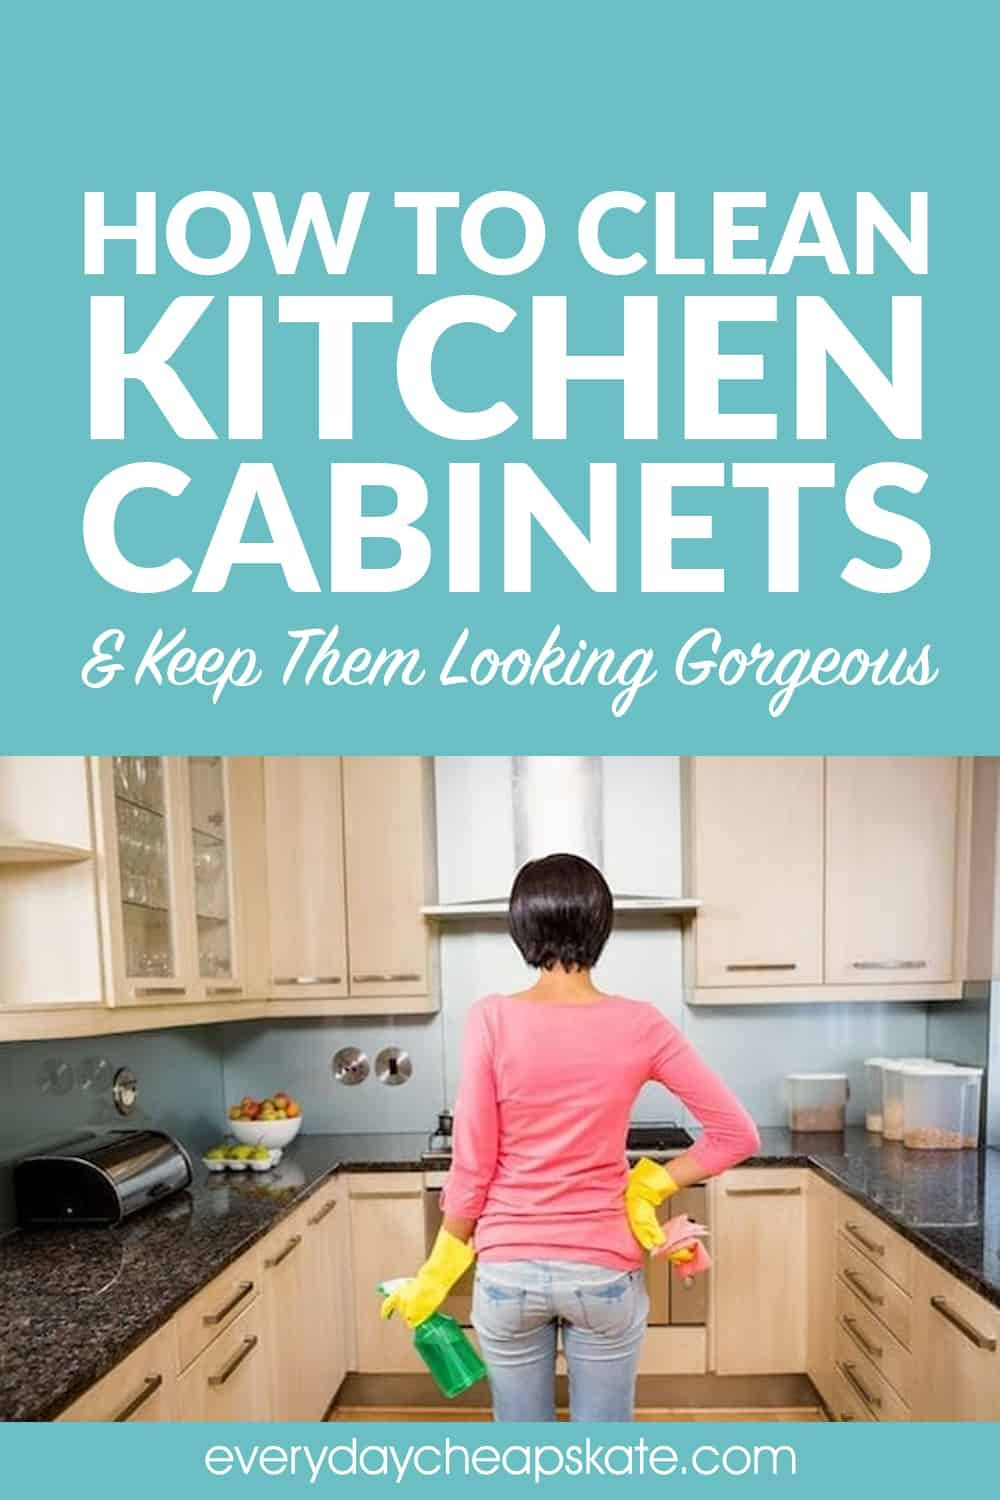 Kitchen Cabinets Are For Storing Dishes Not Grease Unfortunately Wood Cabinets Painted Or Natural Wit In 2020 Clean Kitchen Cabinets Cleaning Cabinets Clean Kitchen